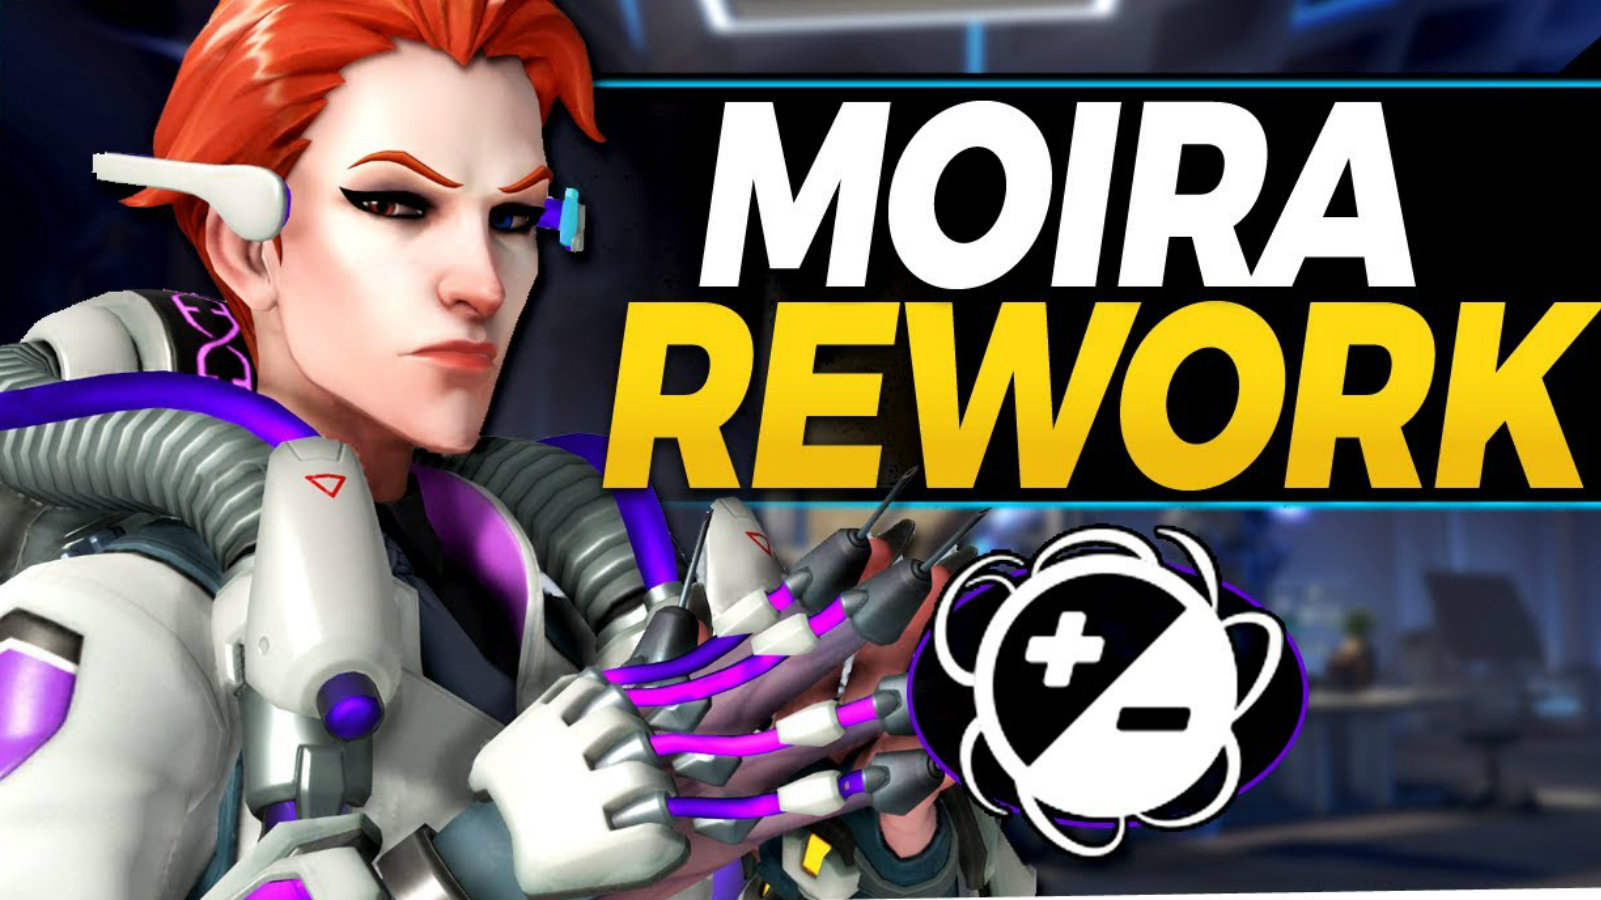 A Moira Rework screen